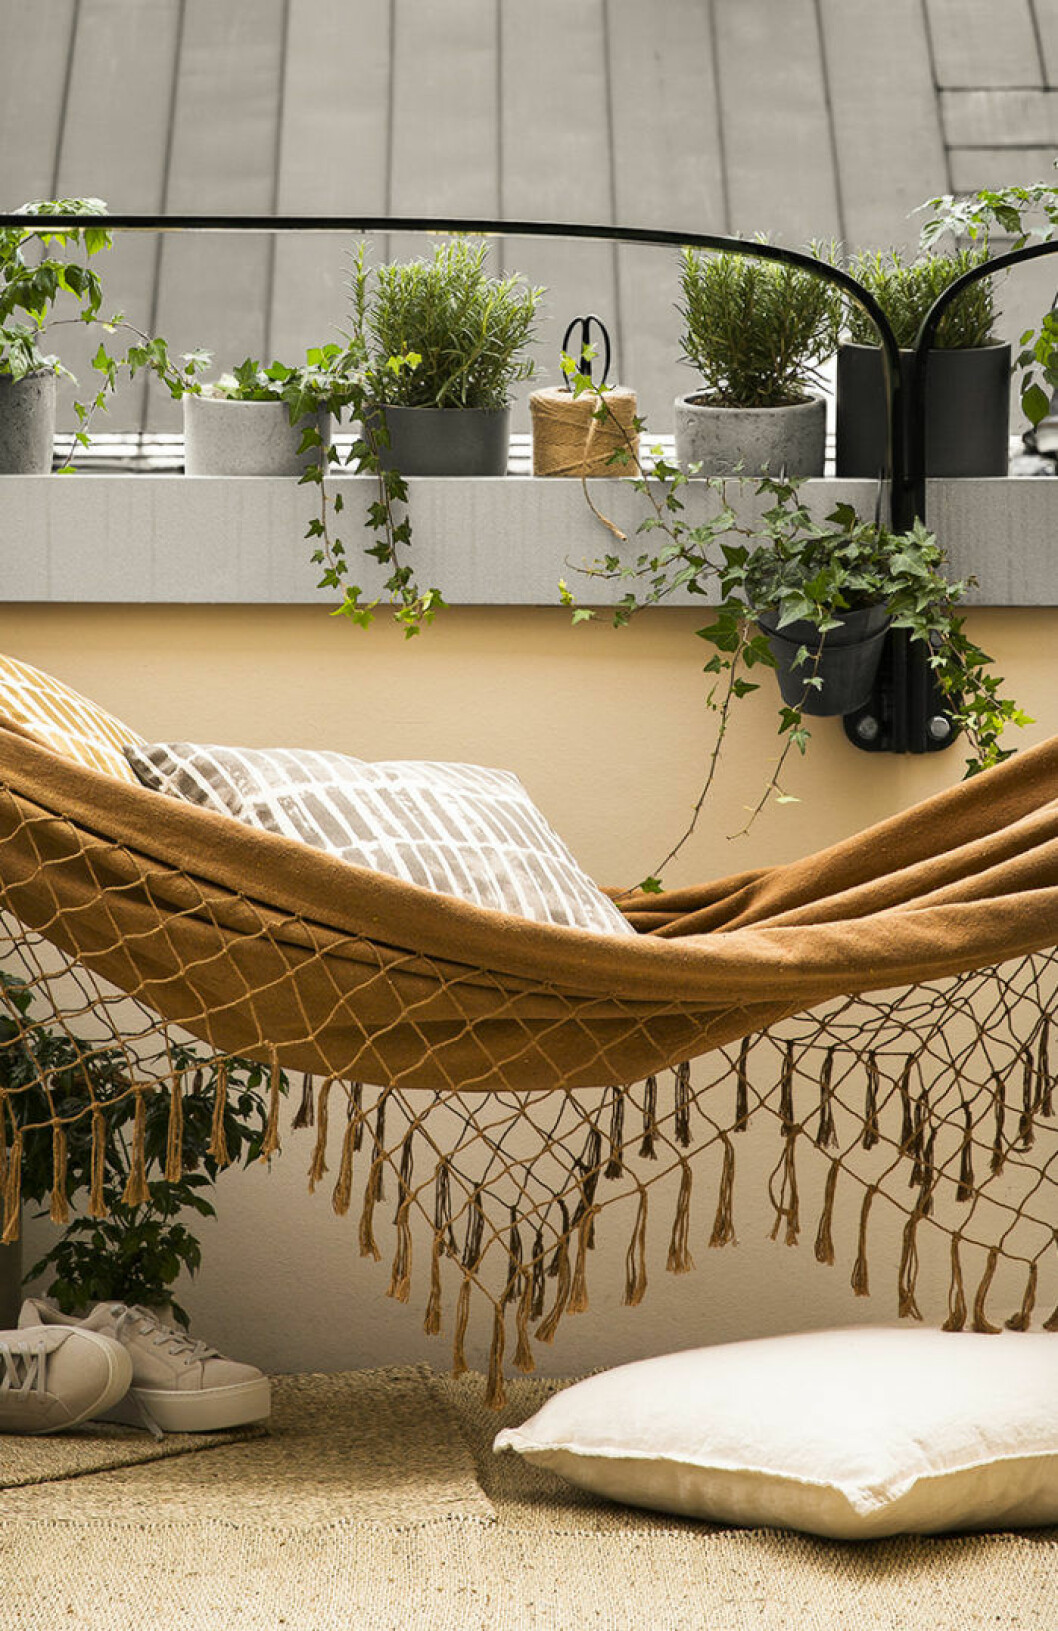 Hammock at the balcony.